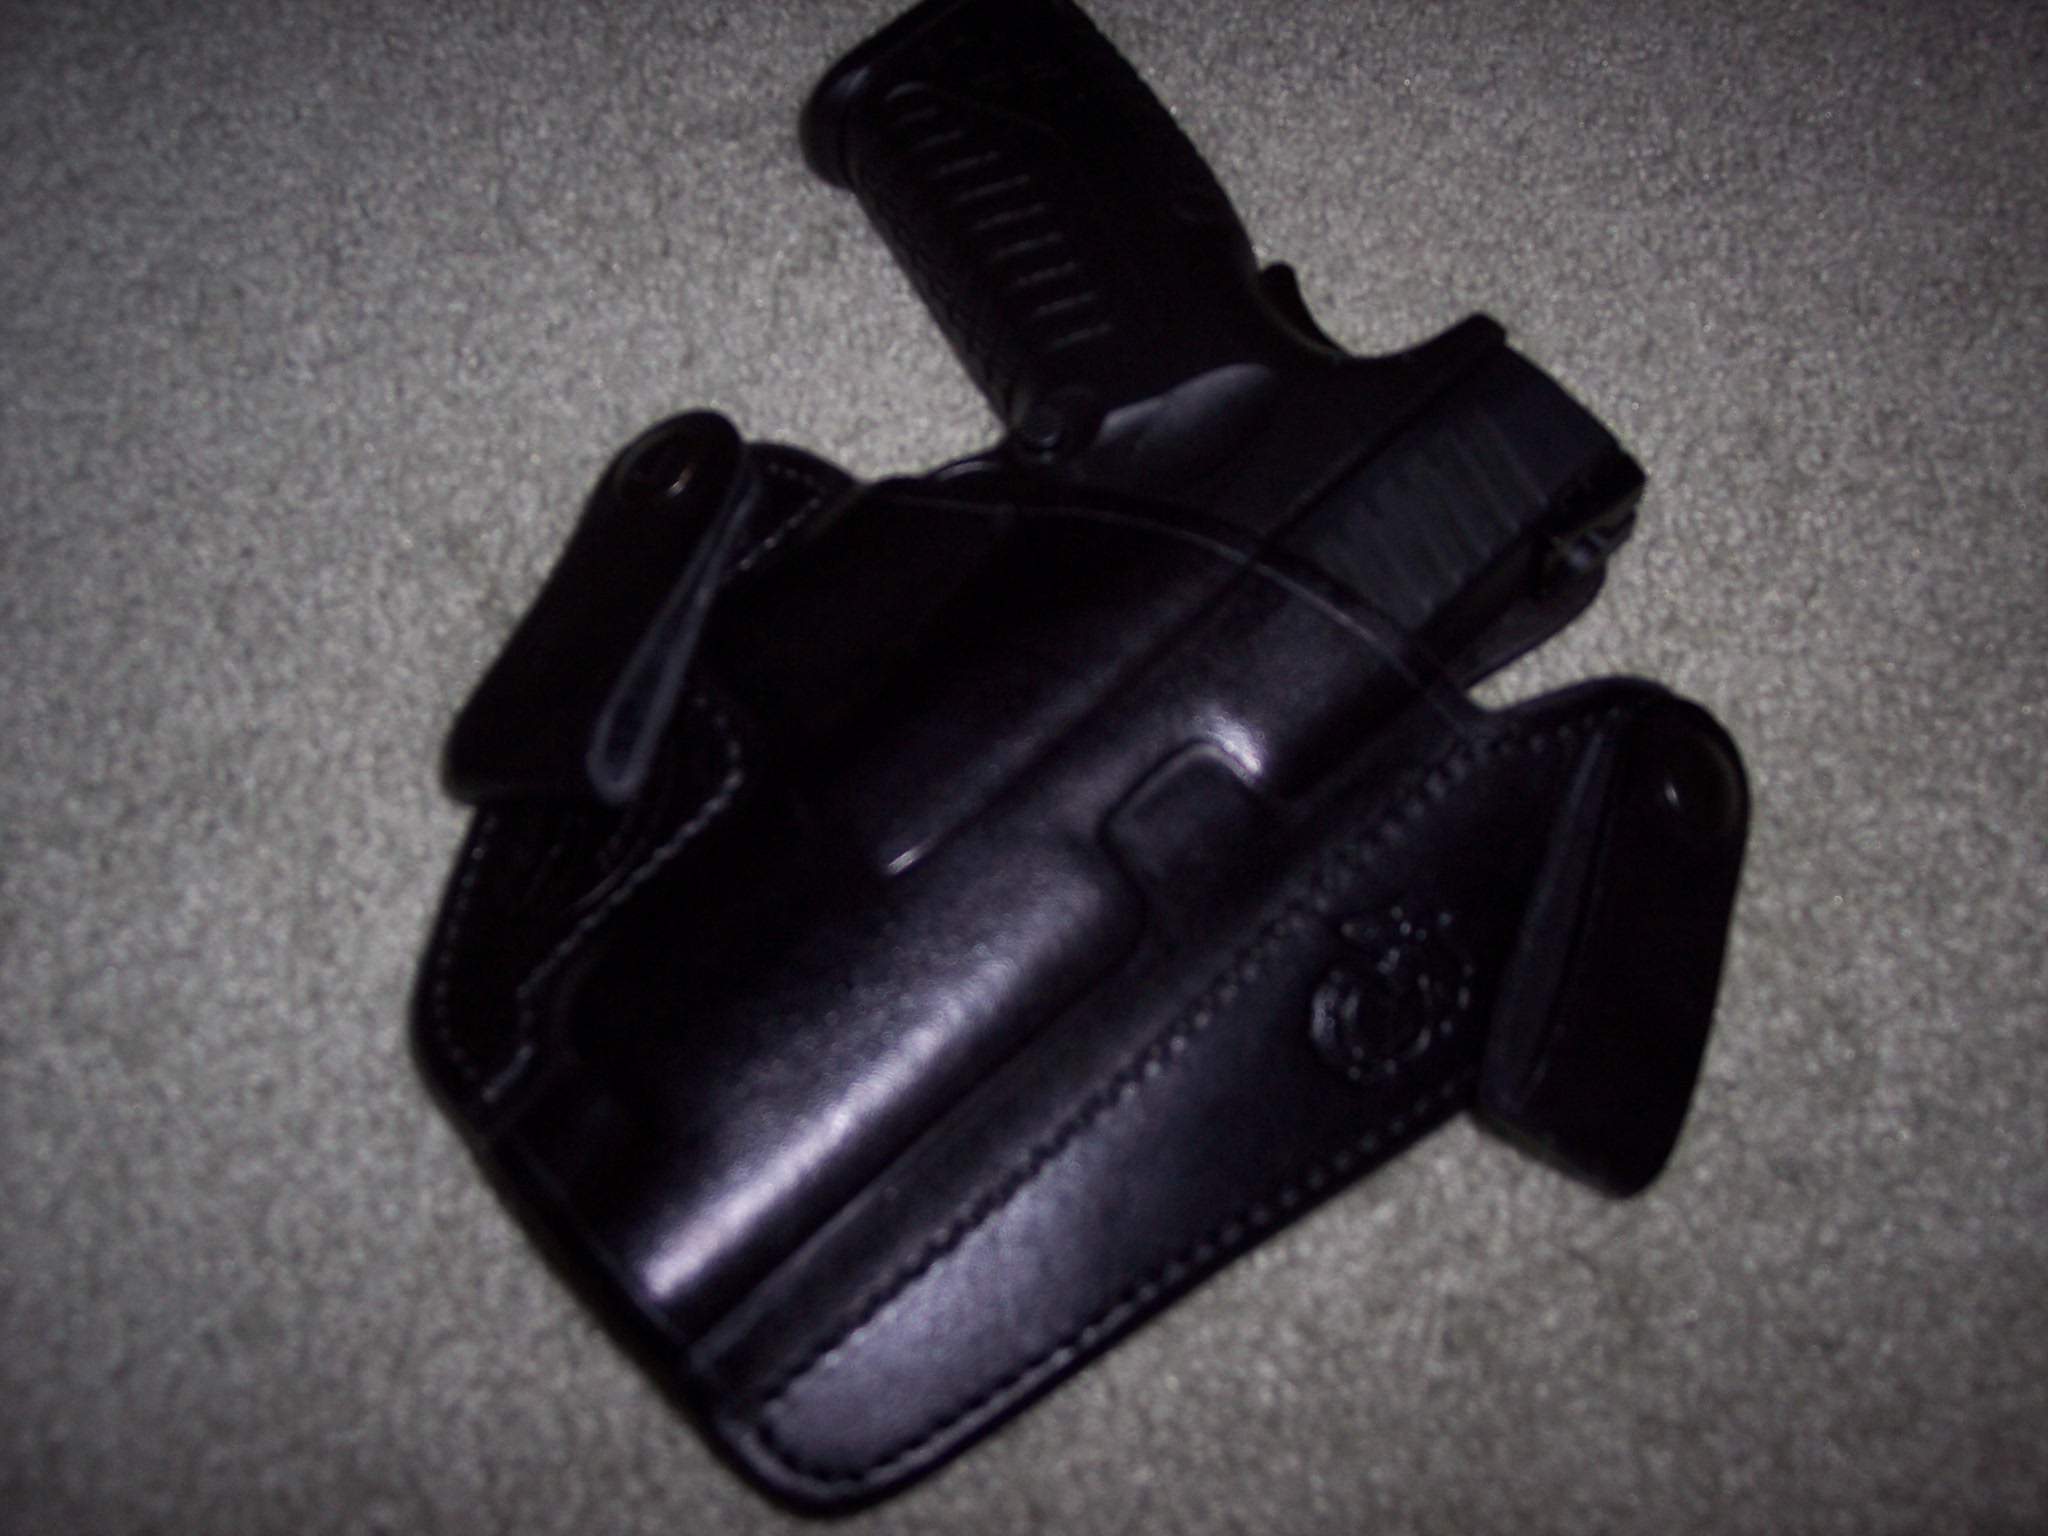 Let's See Your Pic's - How You Carry Concealed.-100_3305.jpg